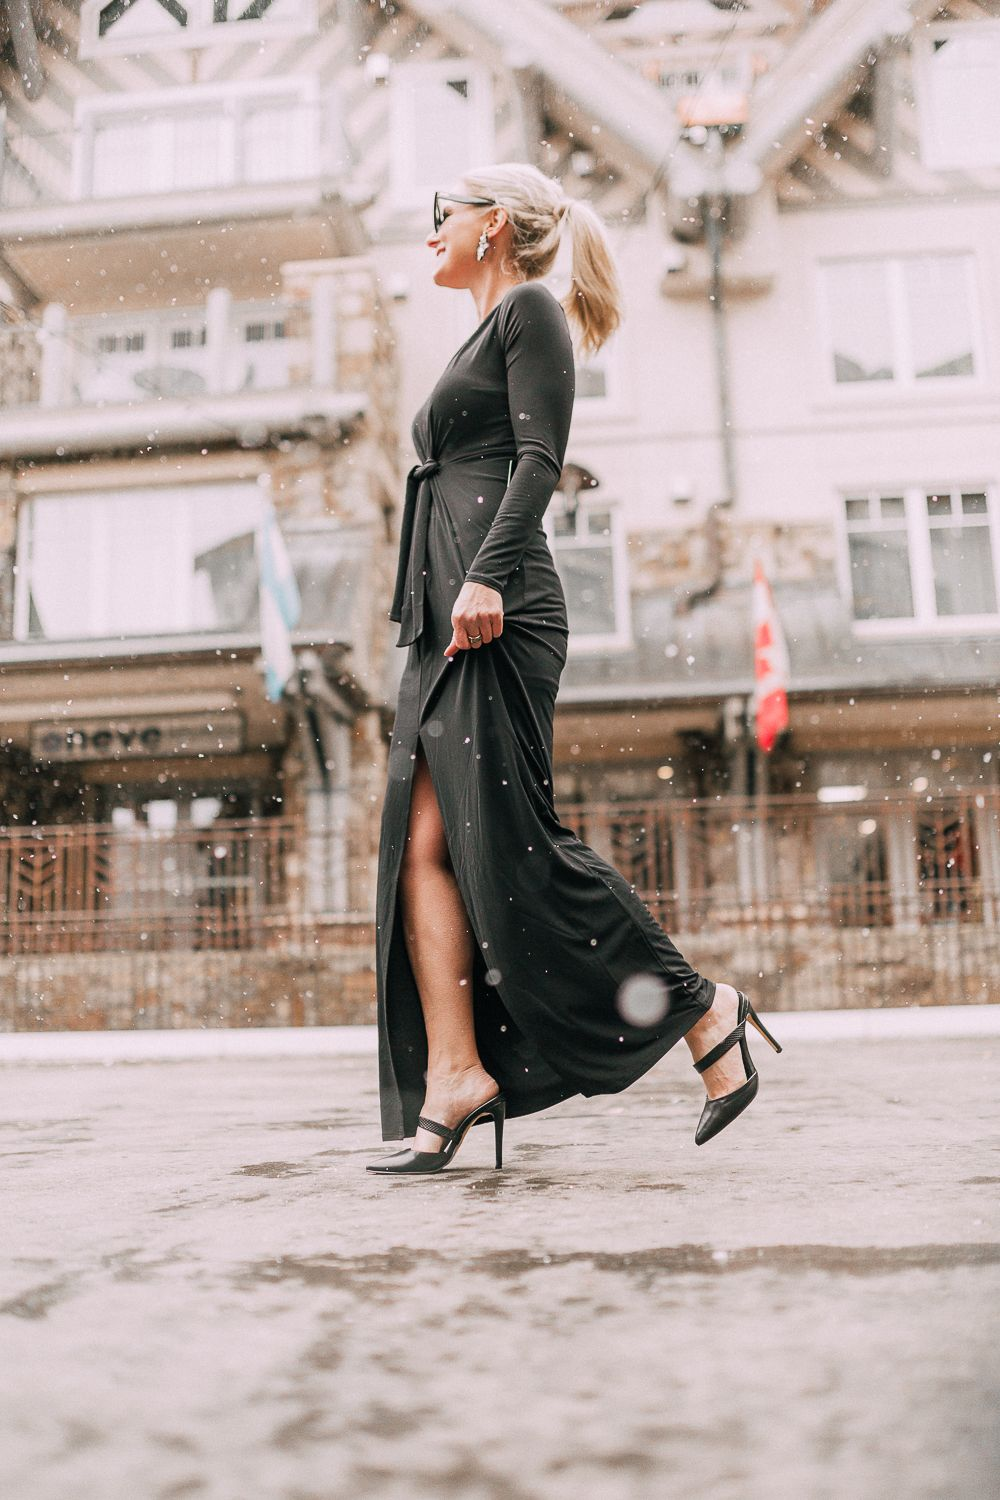 d955cfc78553 Unexpected holiday party outfits featuring a long black maxi dress with high  slit to show off legs and a knot under the bust on blonde fashion blogger  in ...